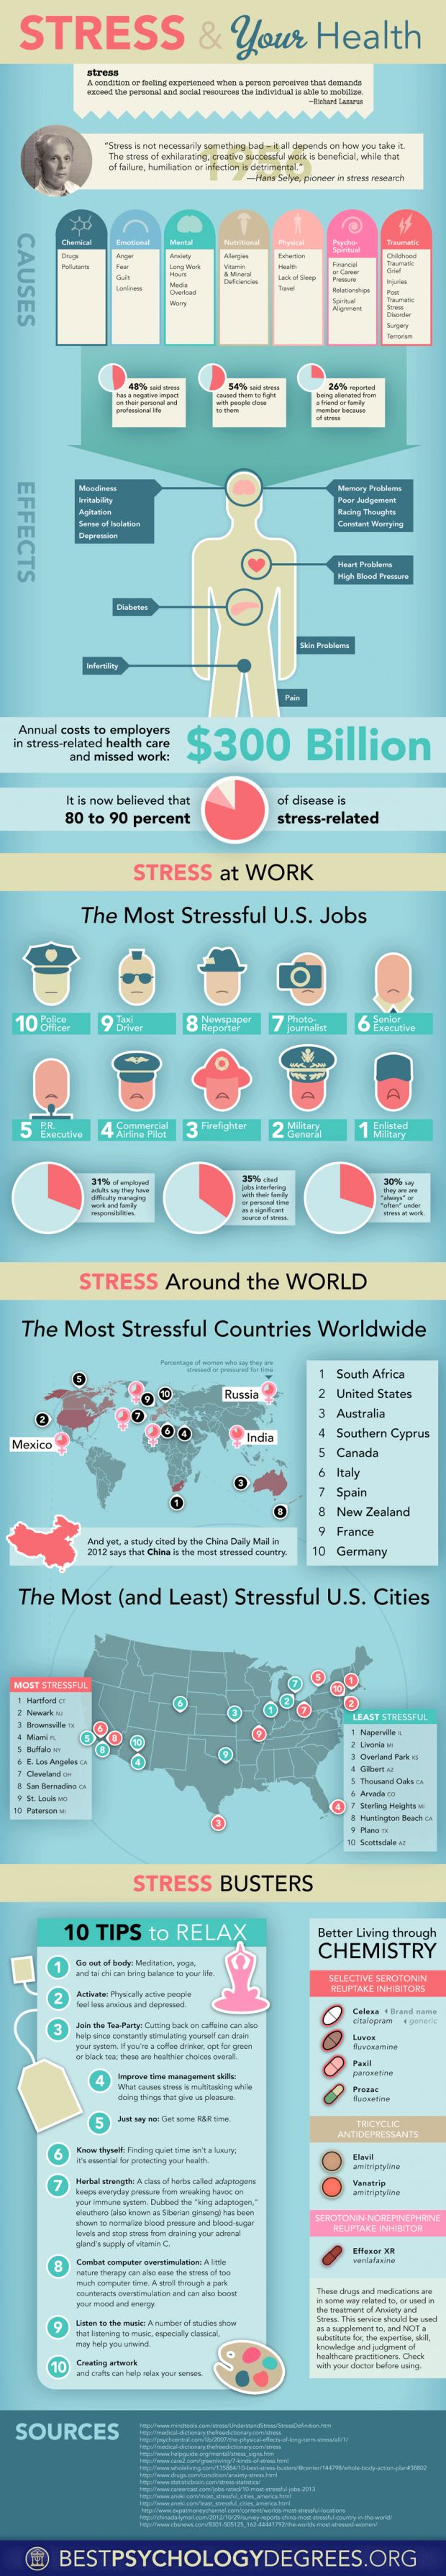 Stress and Health Infographic Check out Nutritional Wellness Products